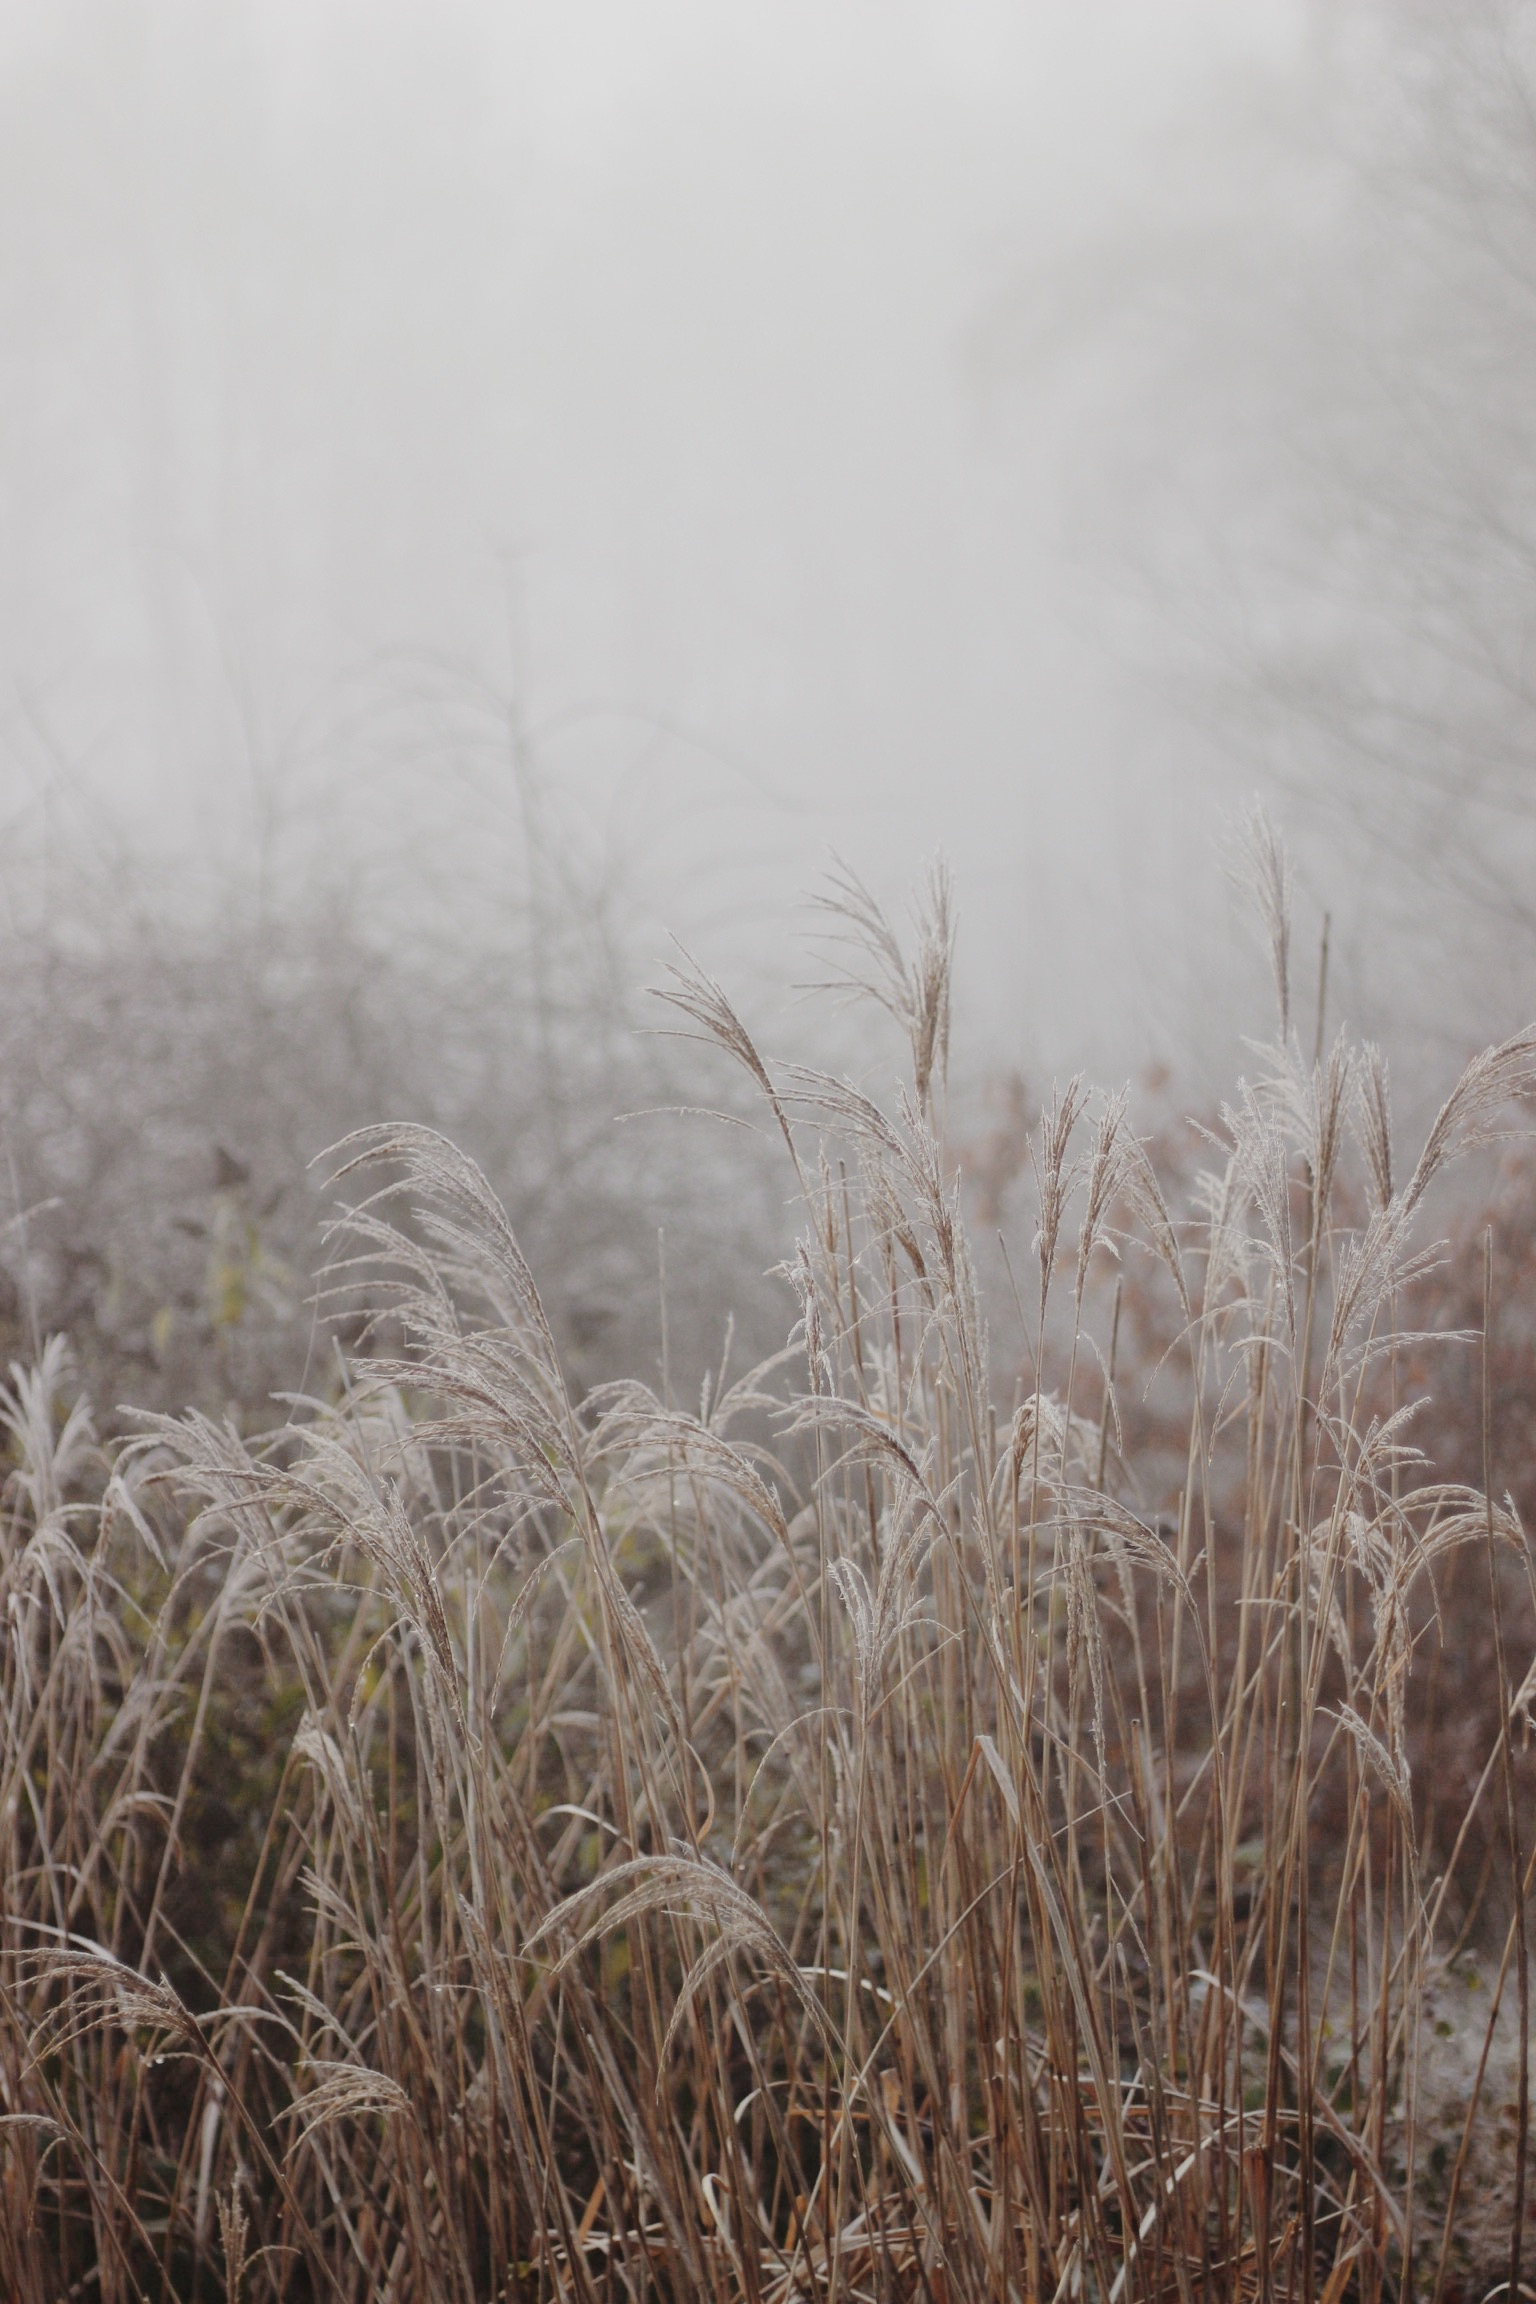 Winter landscape, grasses in field